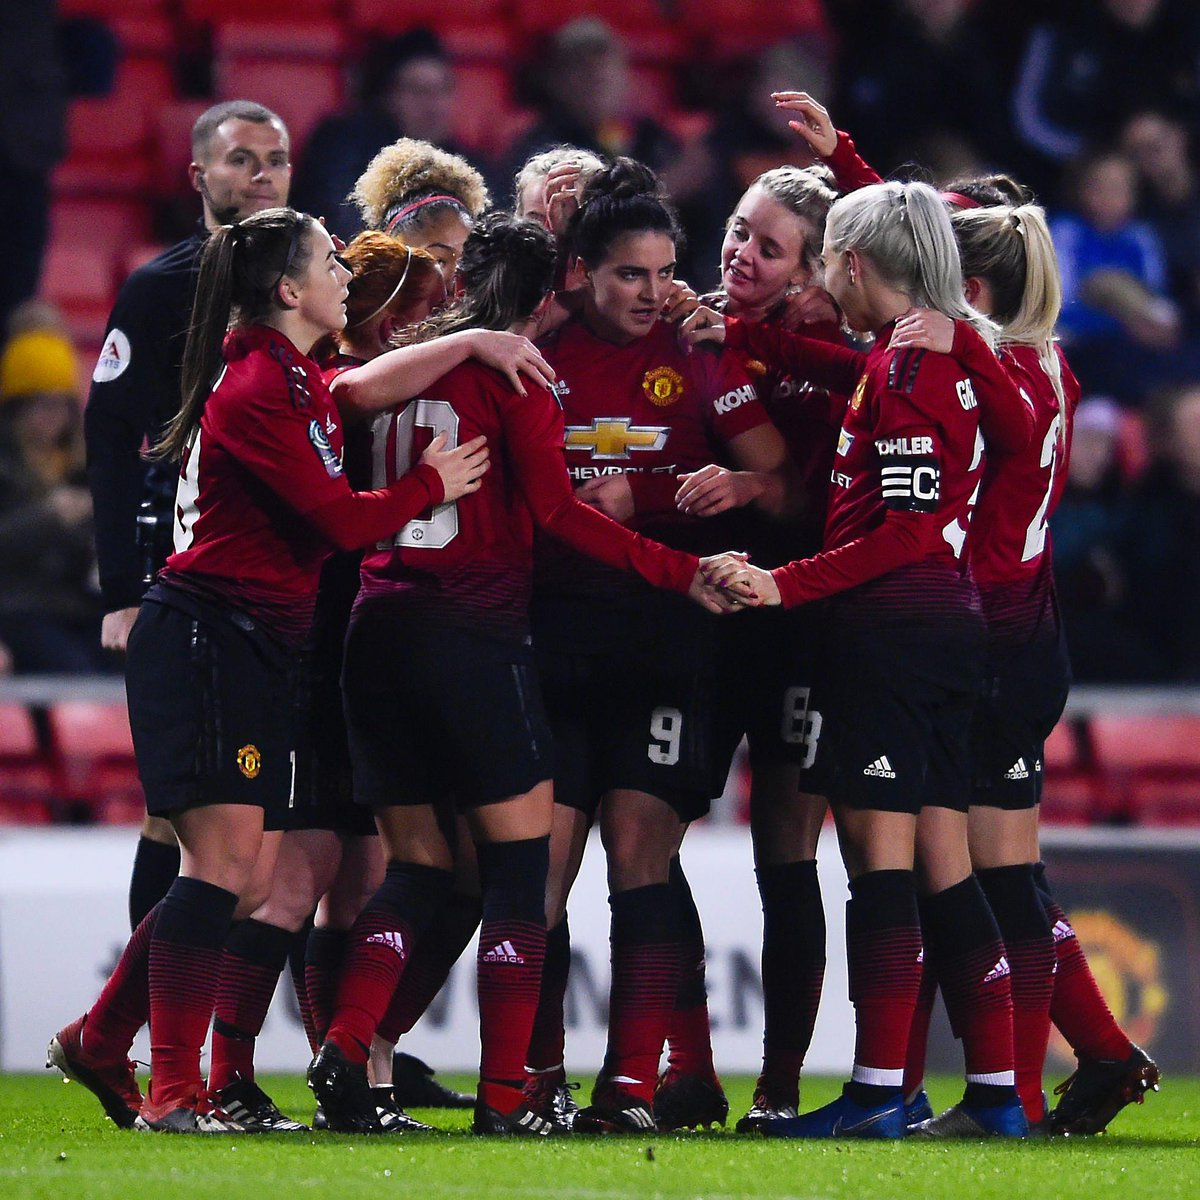 Manchester United Women's photo on Leicester